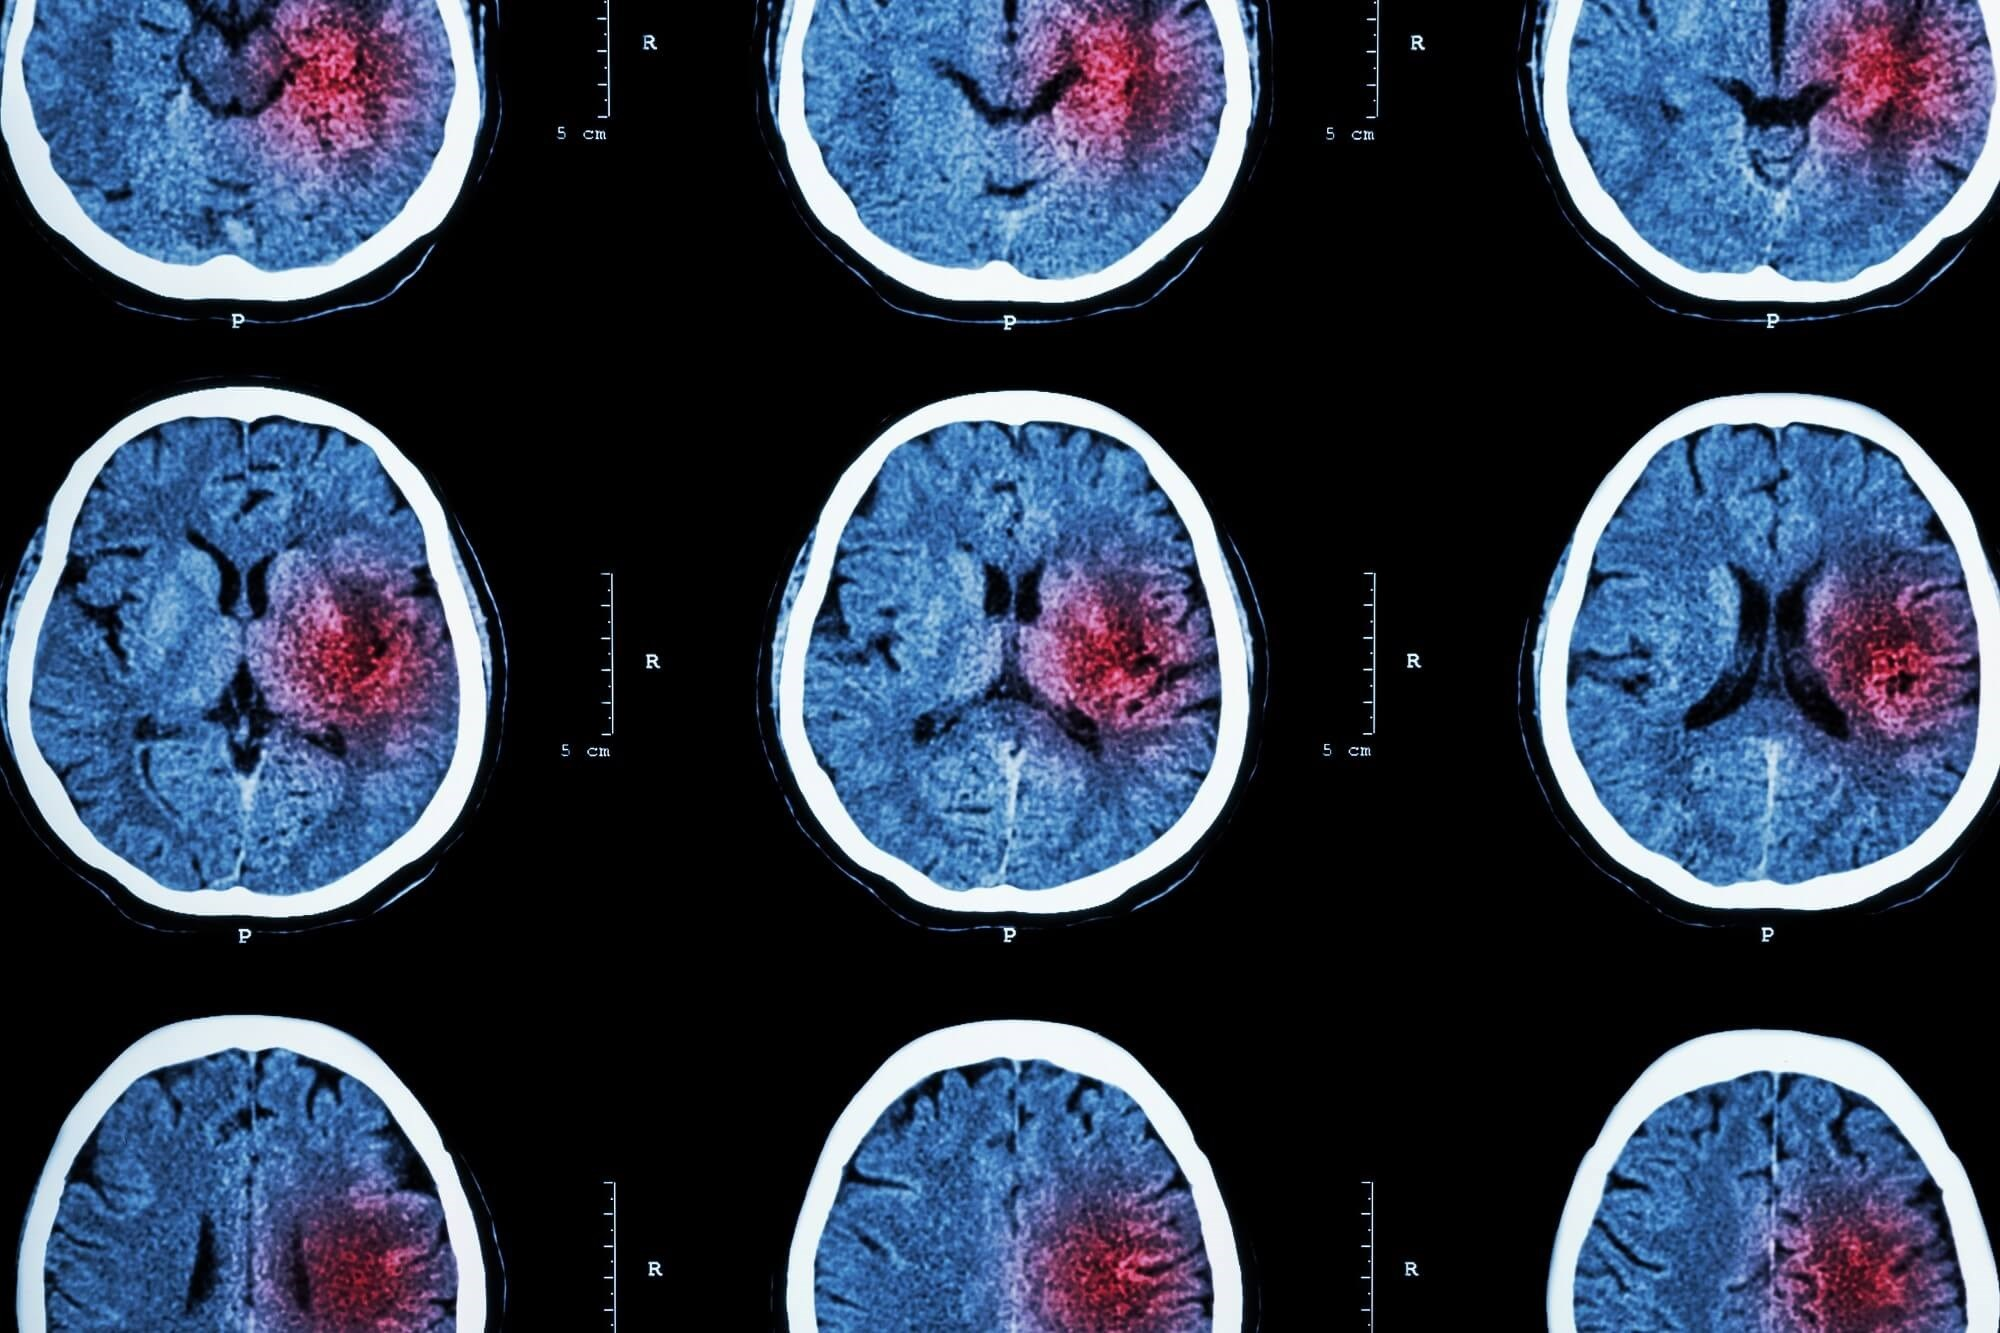 Researchers found that intravenous alteplase can inhibit poststroke ischemic brain lesions or at least delay their progression.